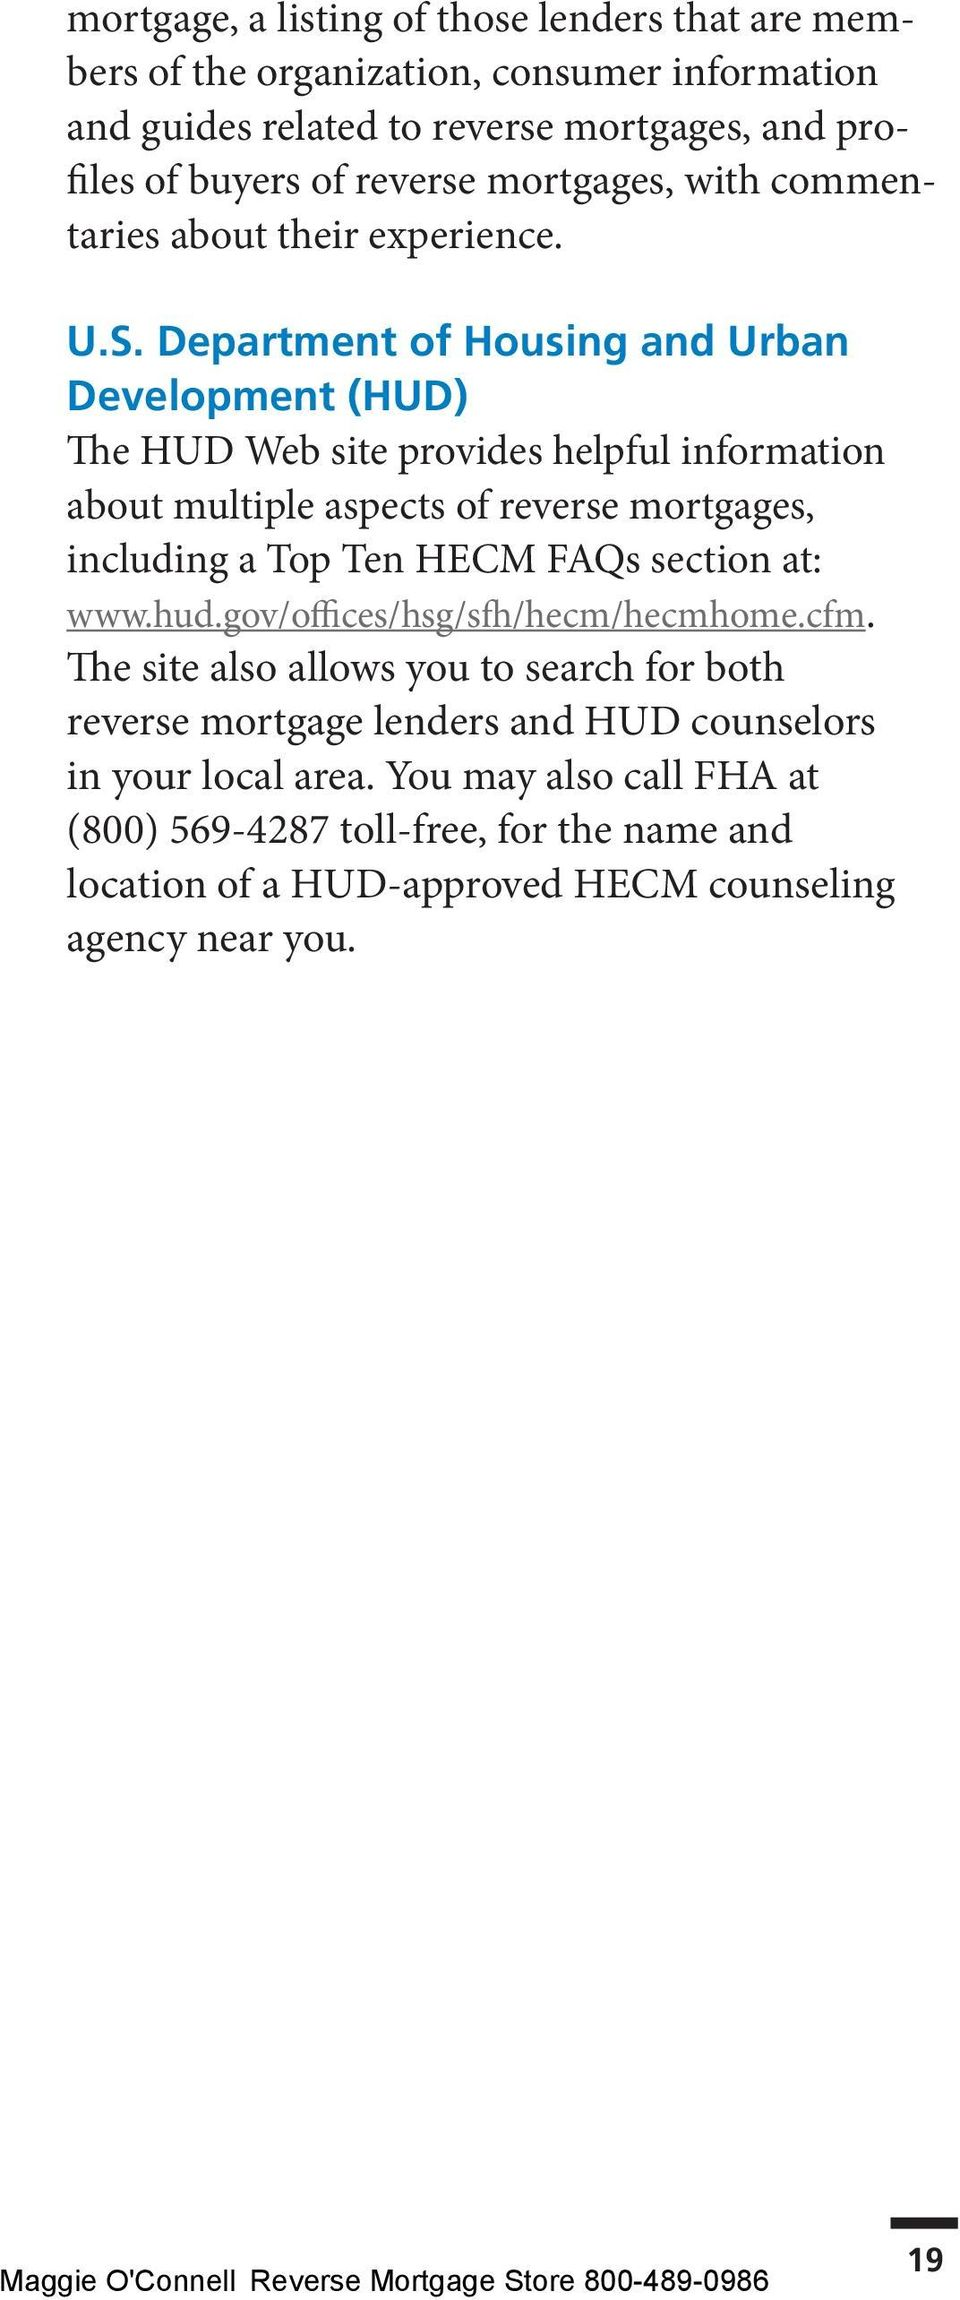 Department of Housing and Urban Development (HUD) The HUD Web site provides helpful information about multiple aspects of reverse mortgages, including a Top Ten HECM FAQs